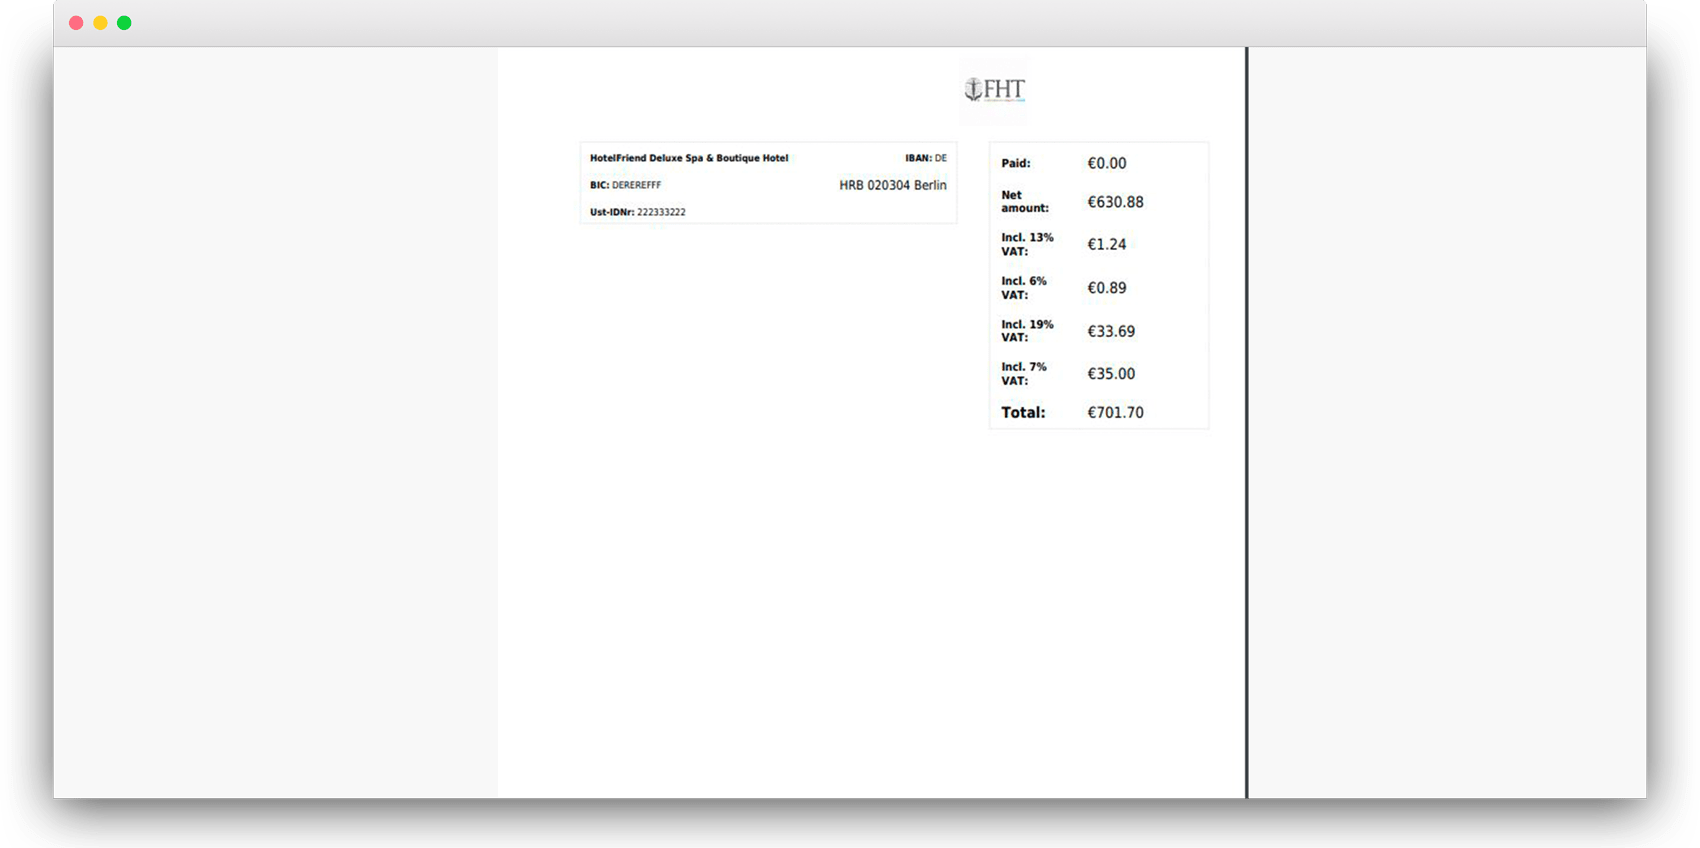 In each new invoice, the net amount will be displayed for the guest as well as VAT for each value